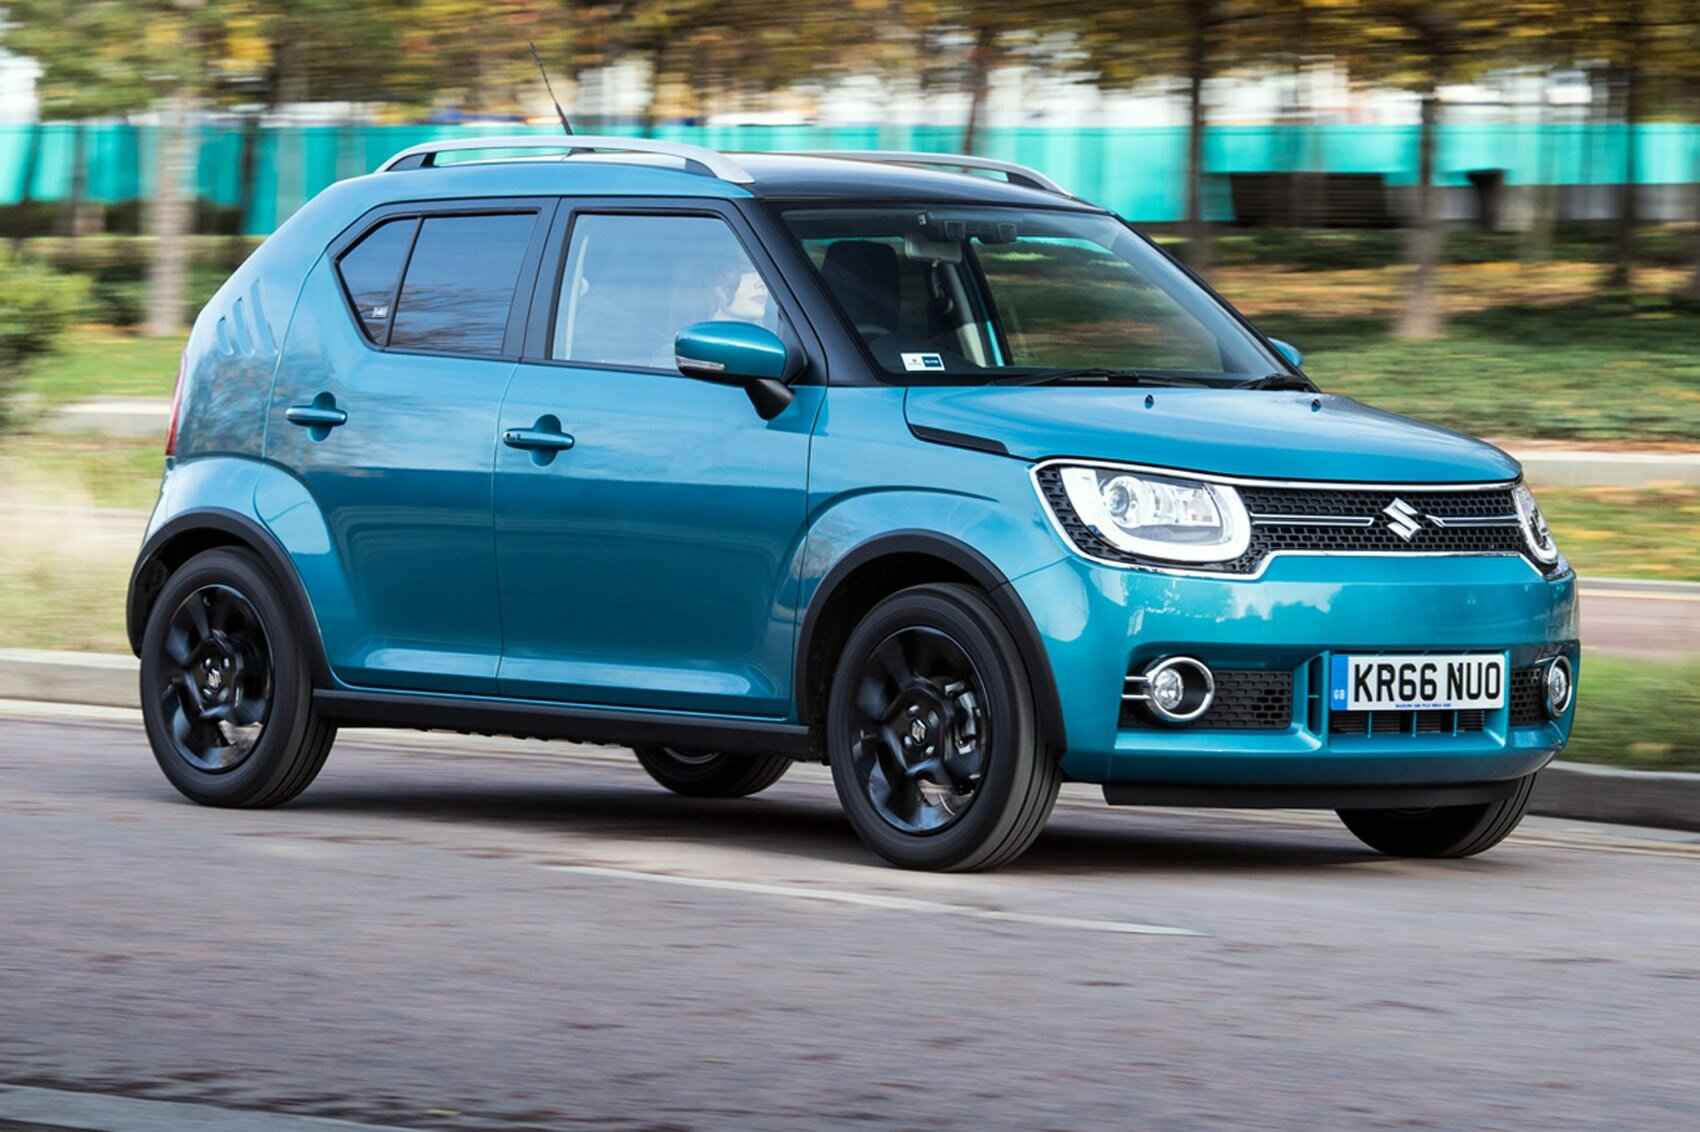 Suzuki Ignis 1.2 SHVS SZ5 4W (2017) review | CAR Magazine